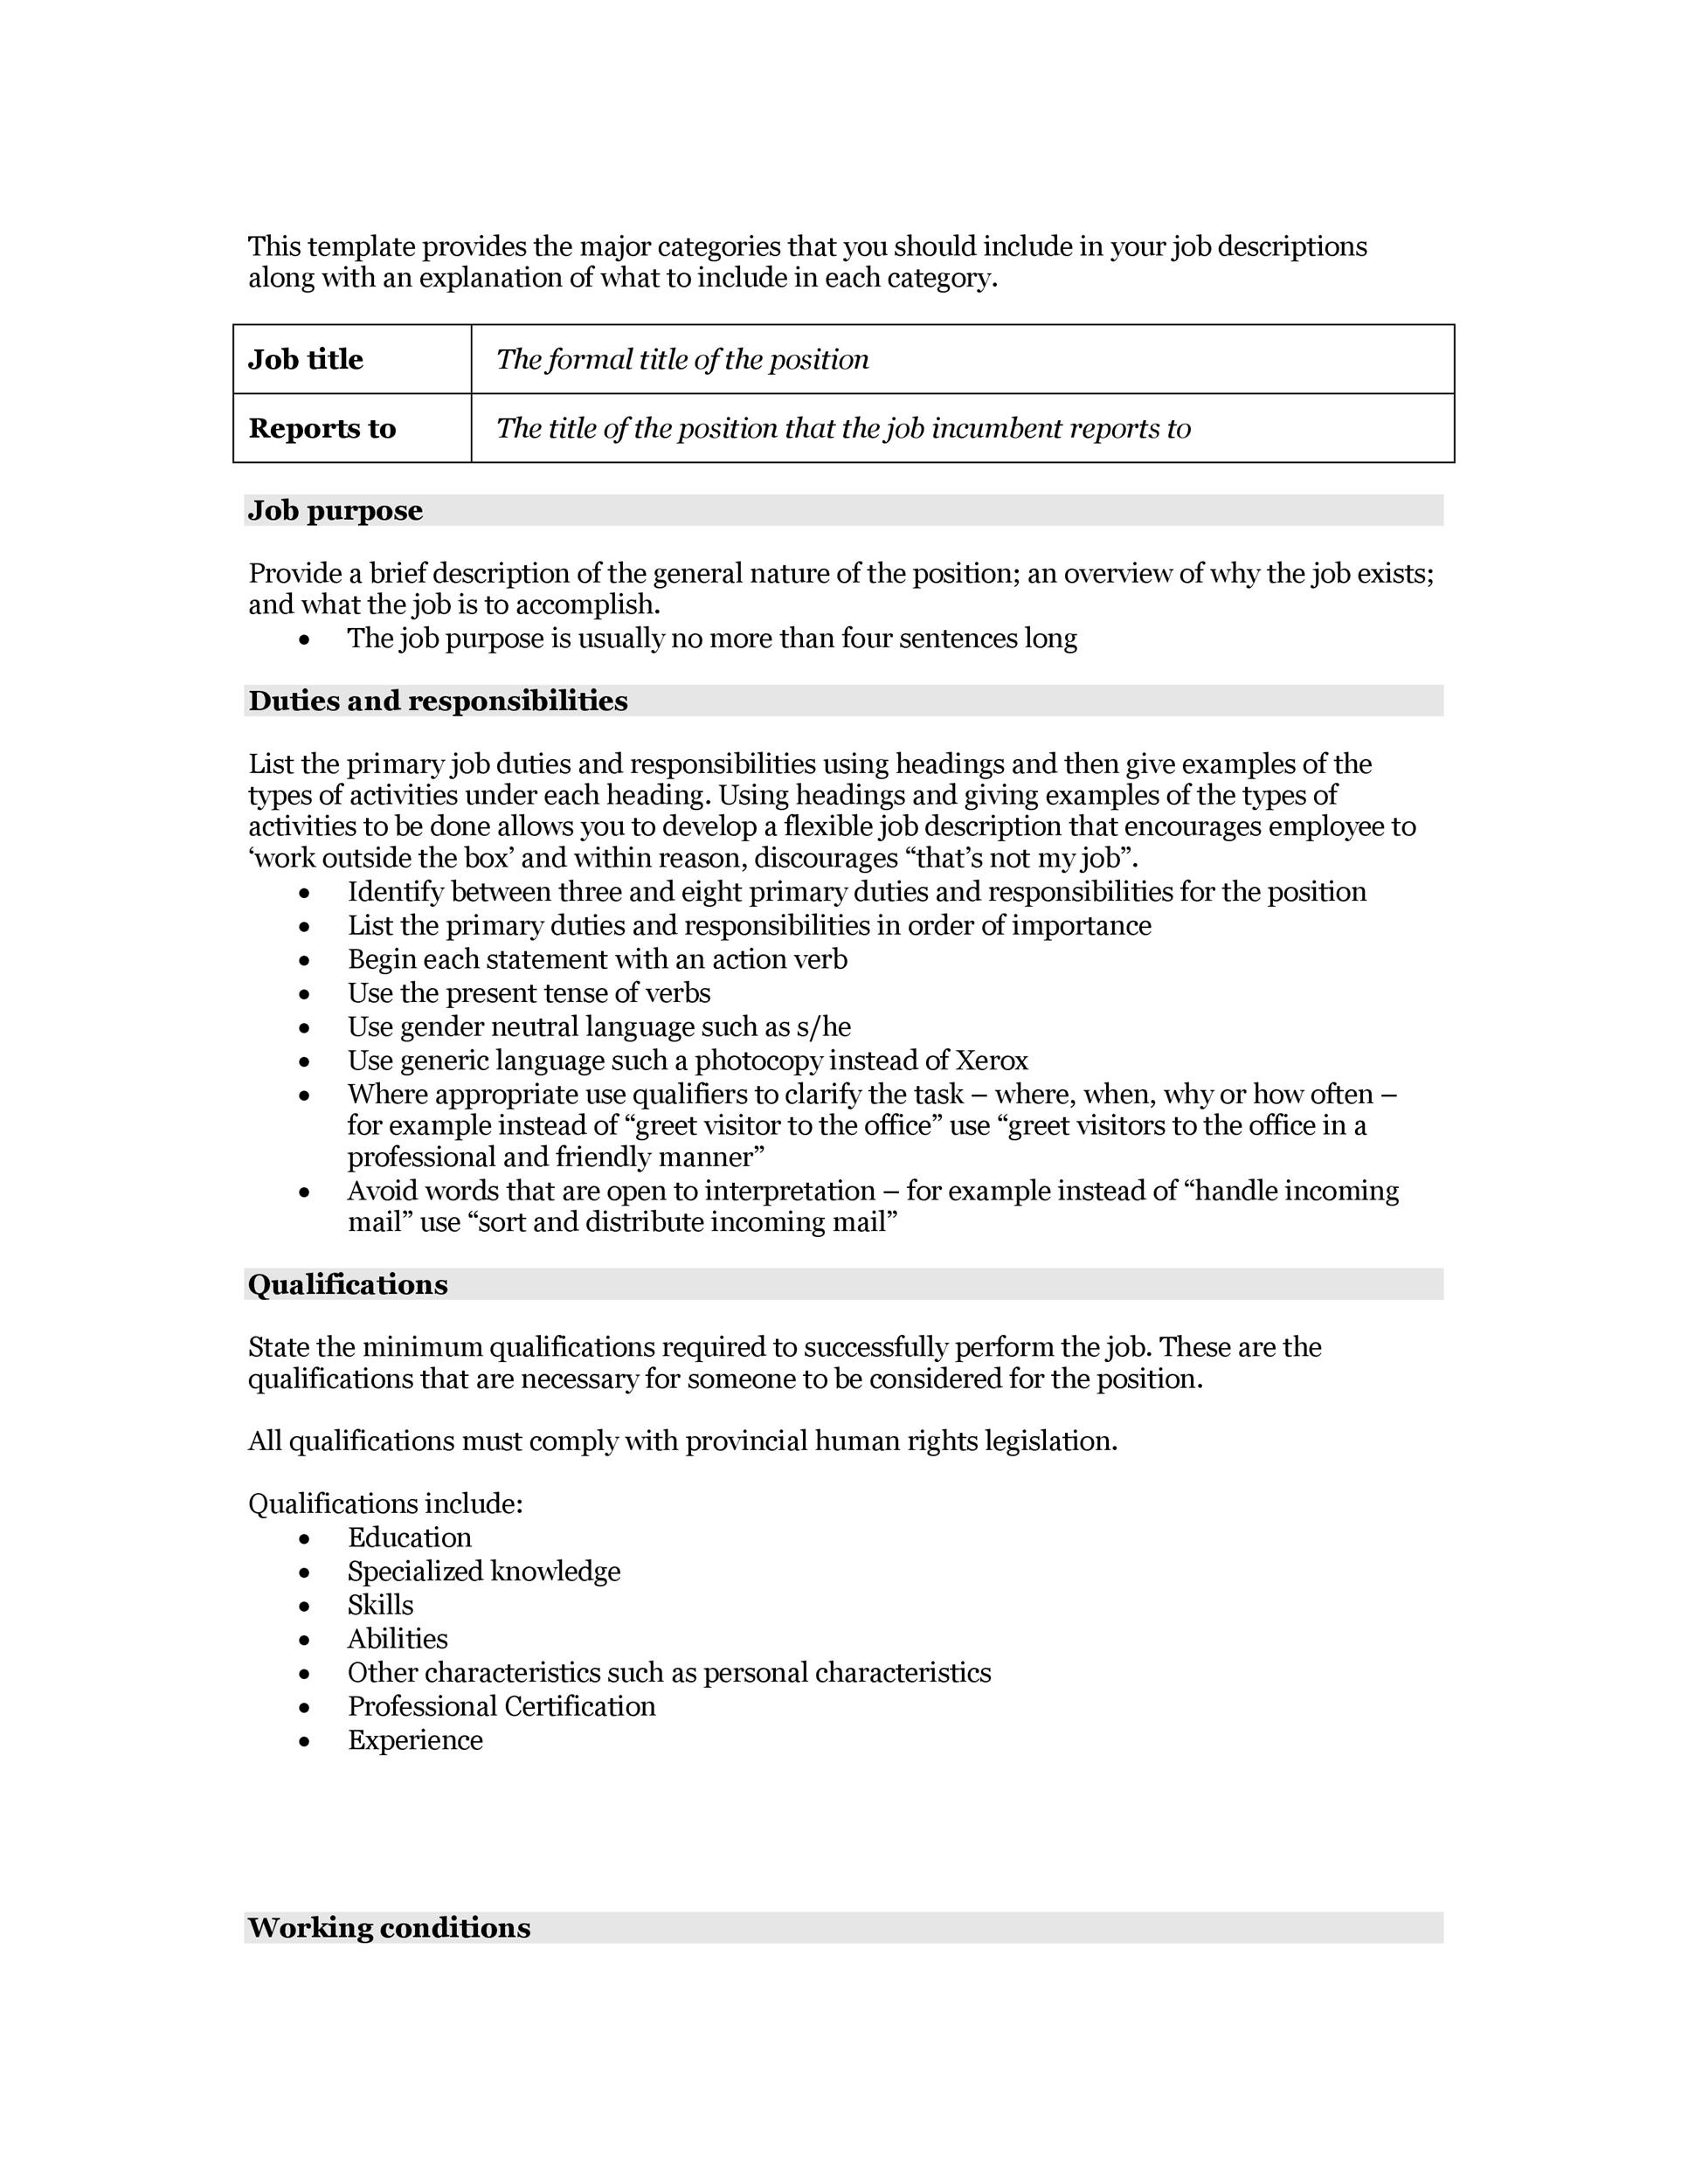 Driver Job Description Template